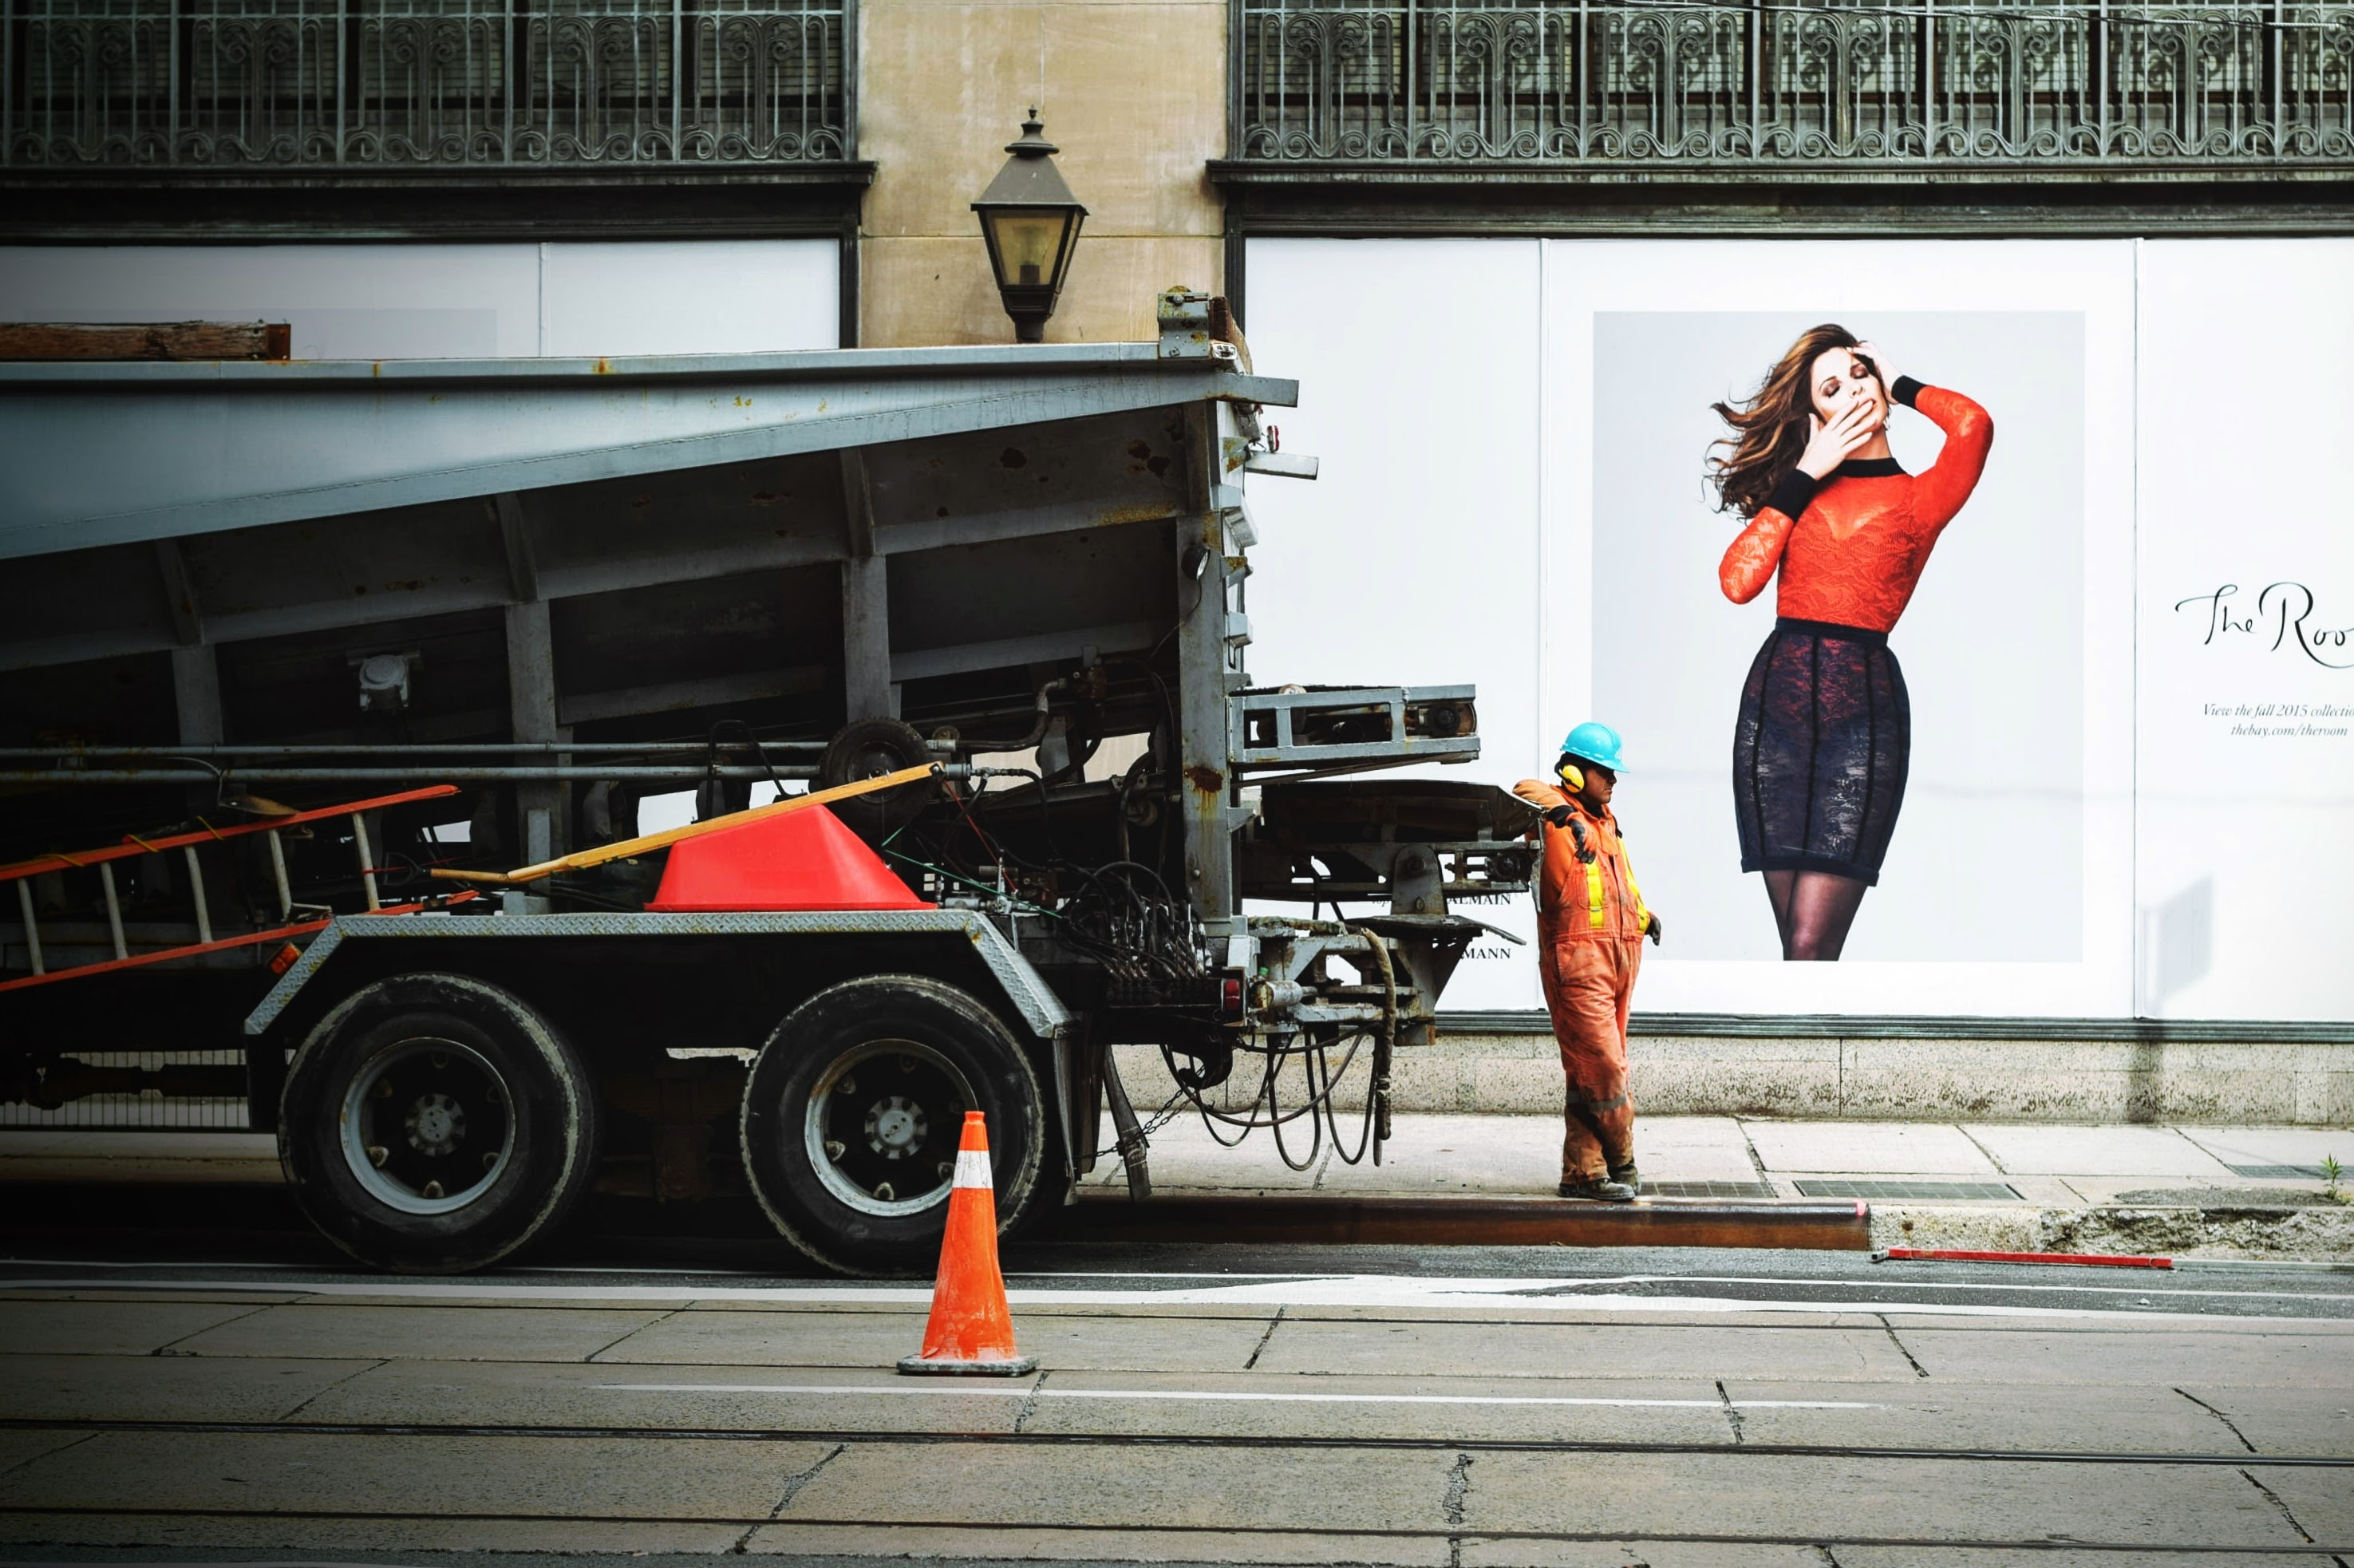 A construction worker stands alongside a truck with a wall of advertisements behind him